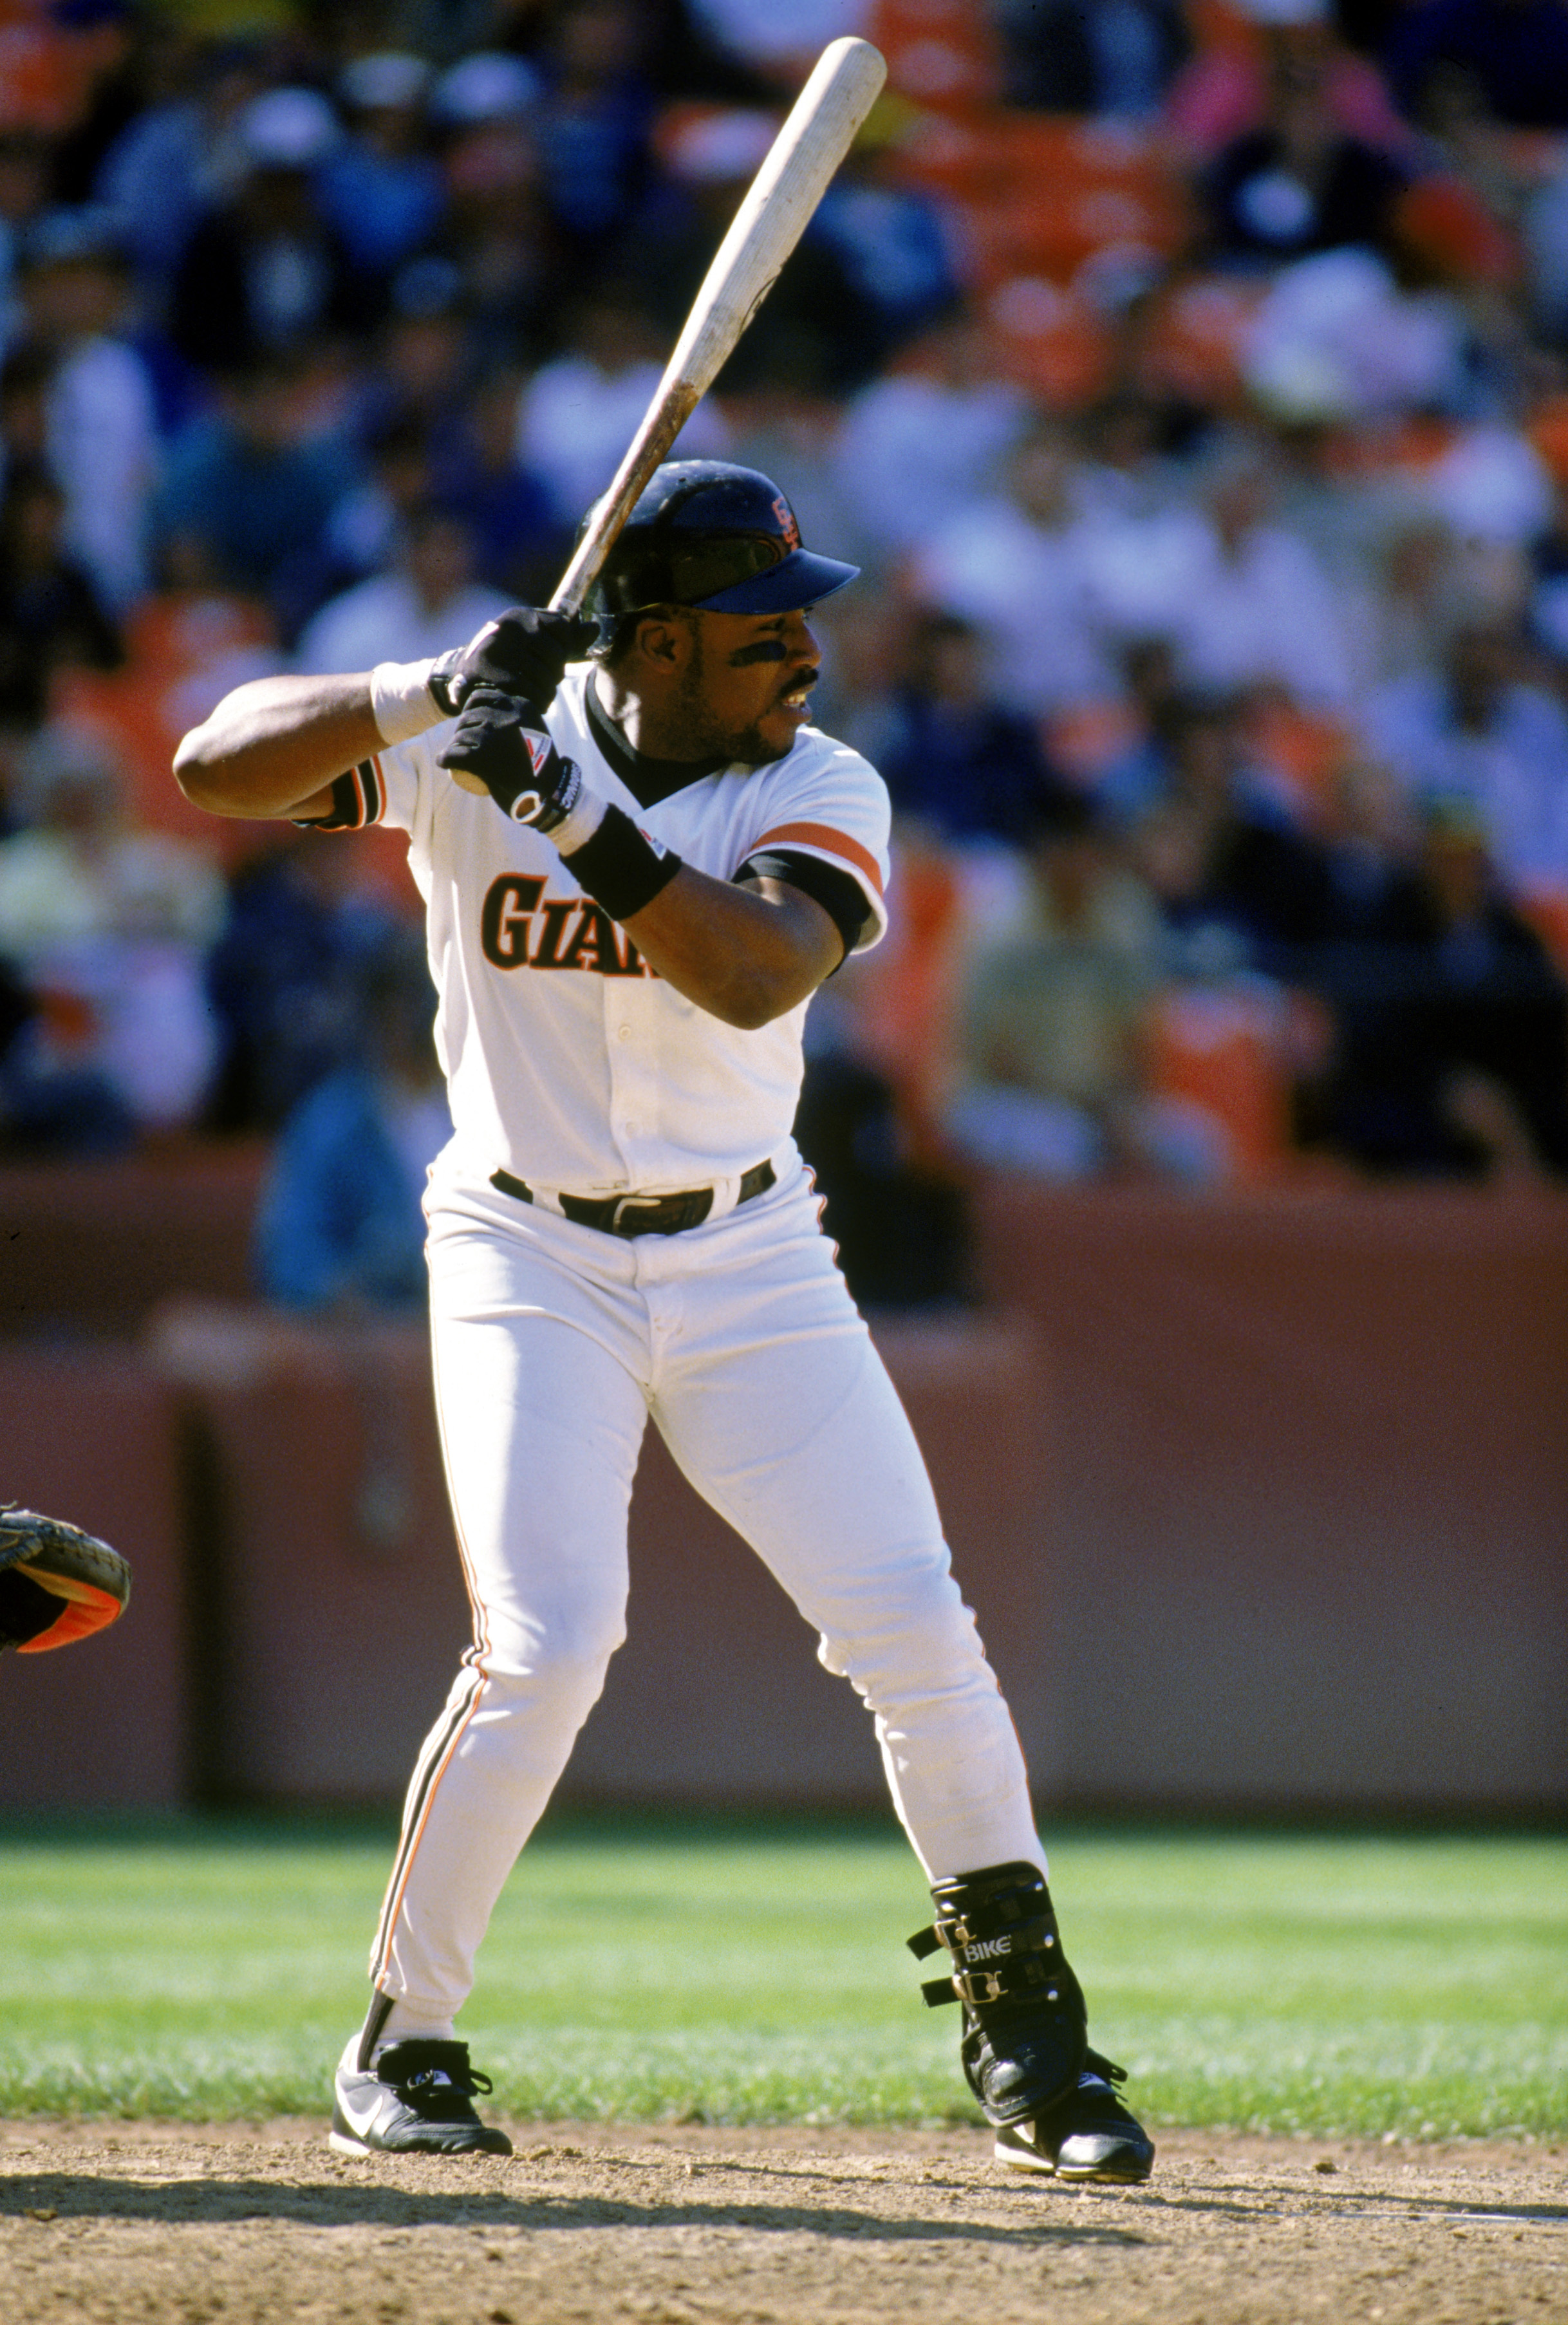 SAN FRANCISCO - 1989:  Kevin Mitchell #7 of the San Francisco Giants waits for the pitch during a 1989 game at Candlestick Park in San Francisco, California.  (Photo by Otto Greule Jr/Getty Images)